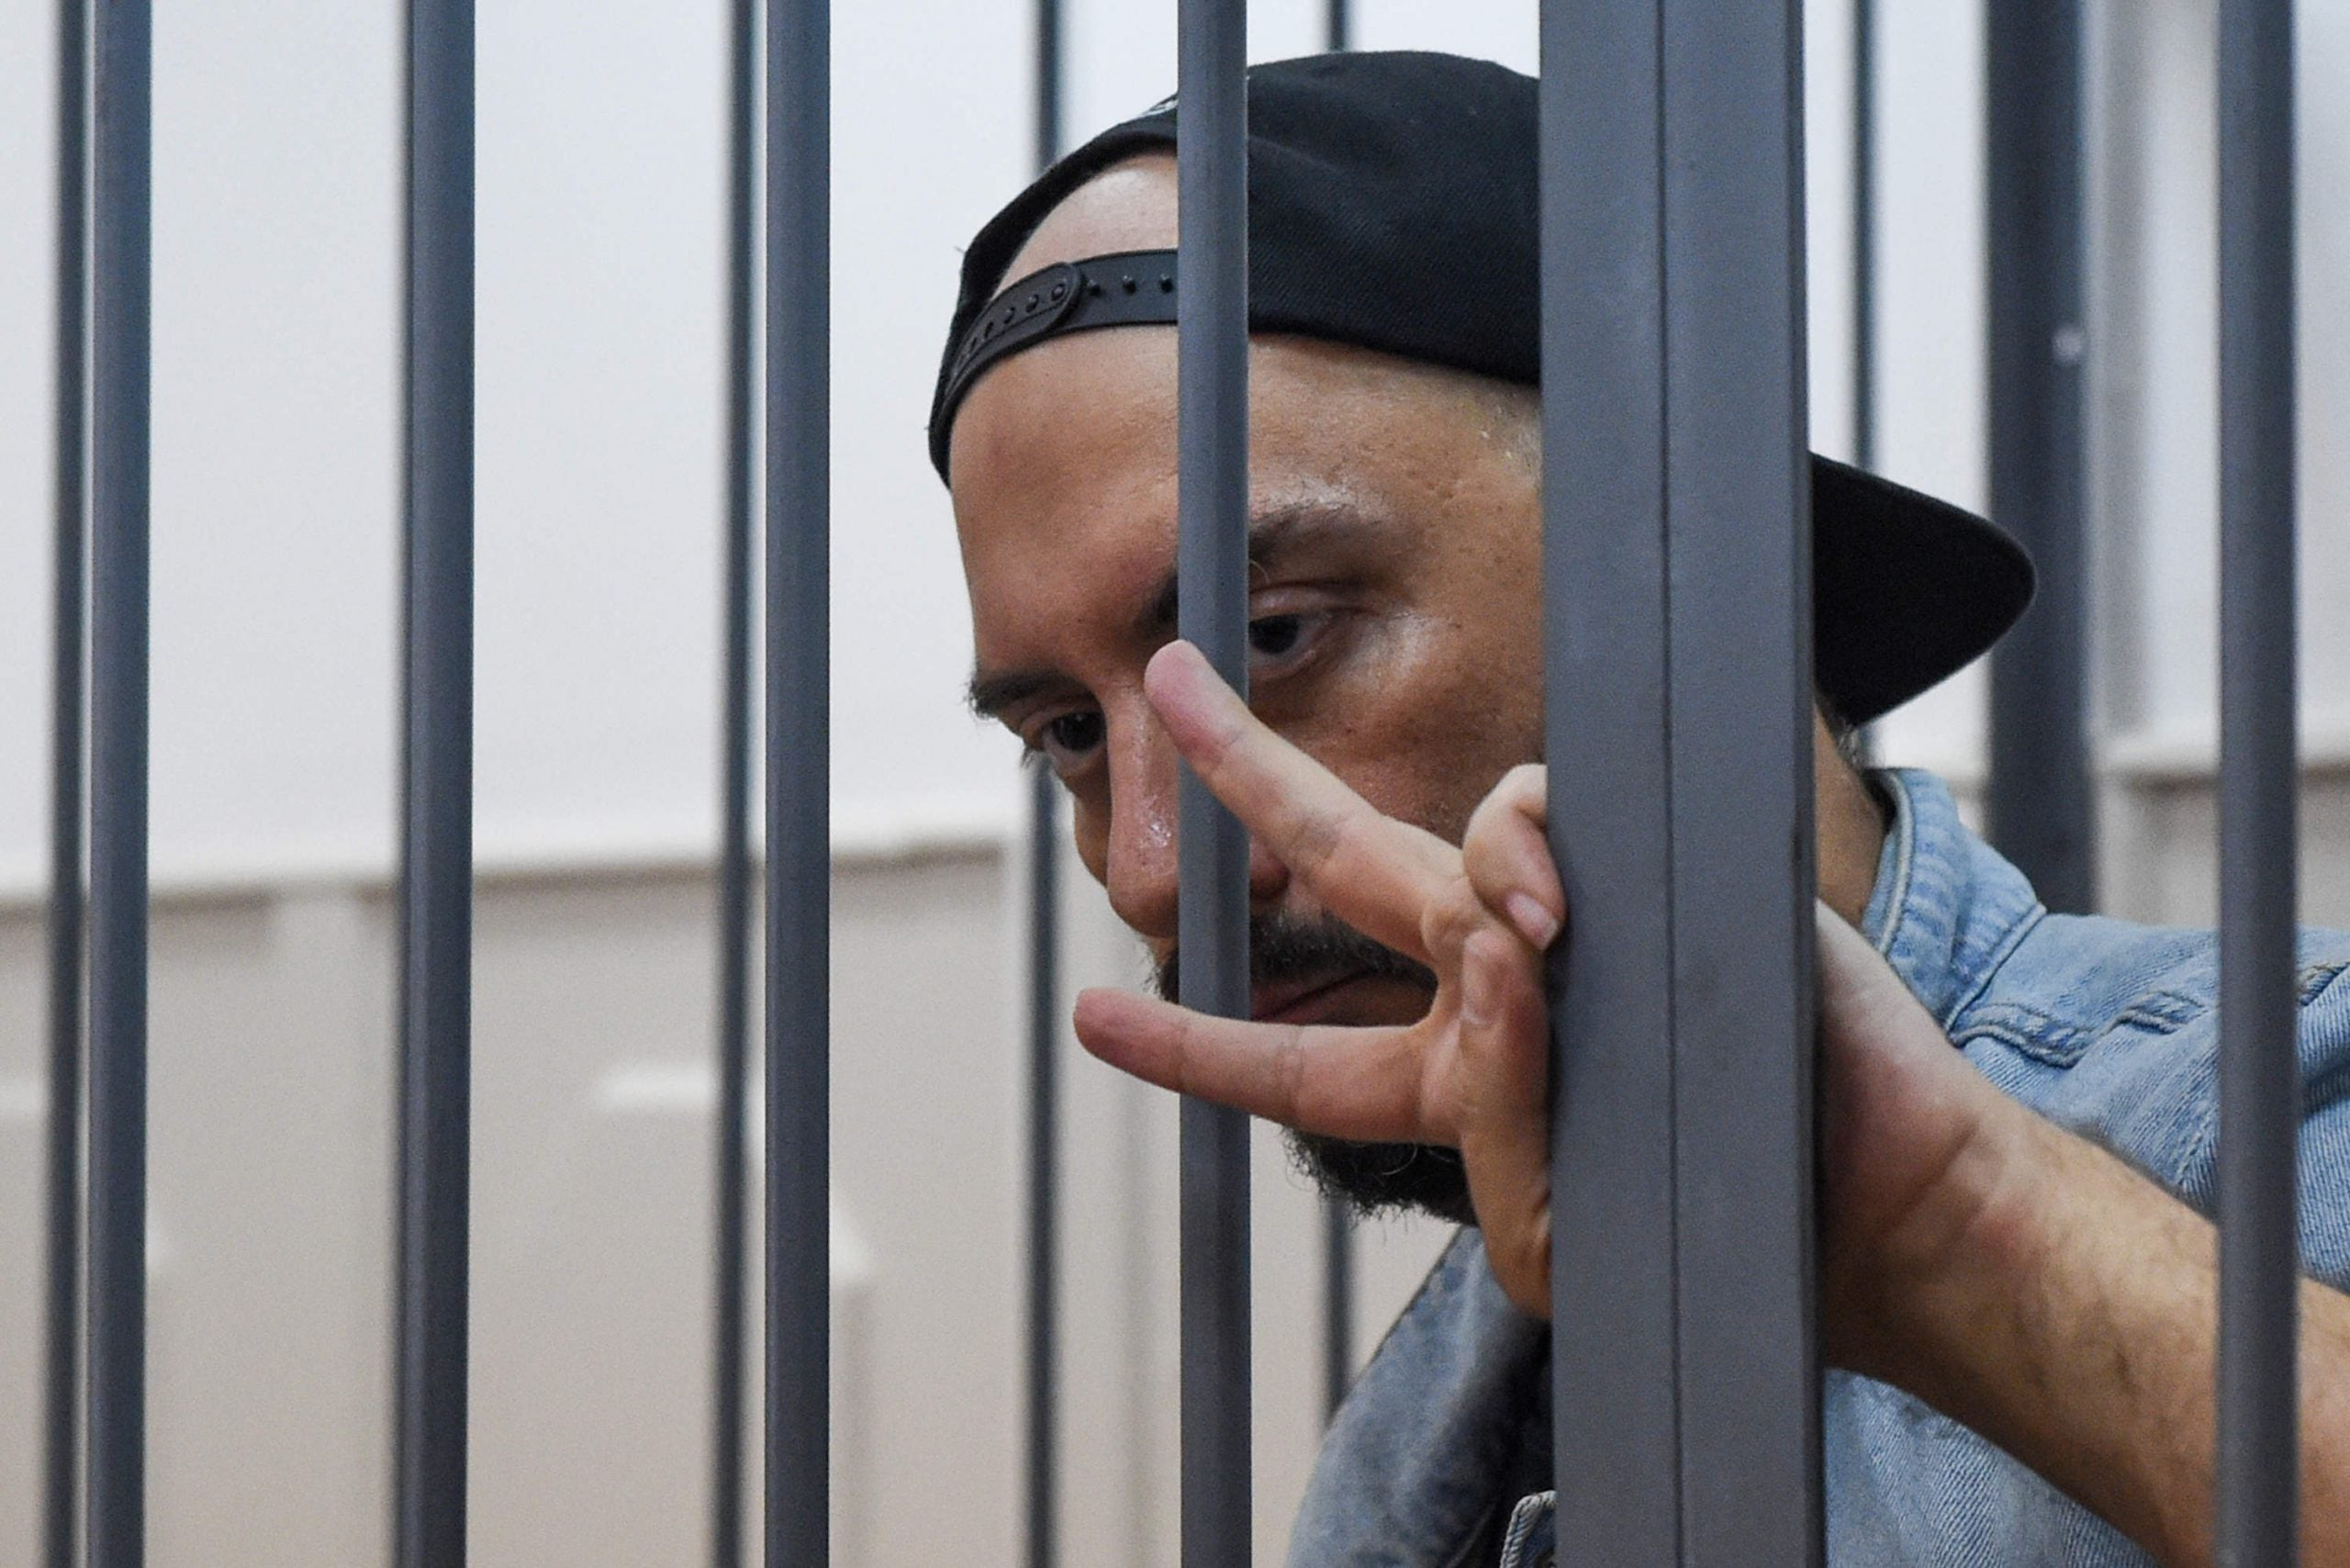 Serebrennikov's arrest is another step in the erosion of Russia's cultural freedom